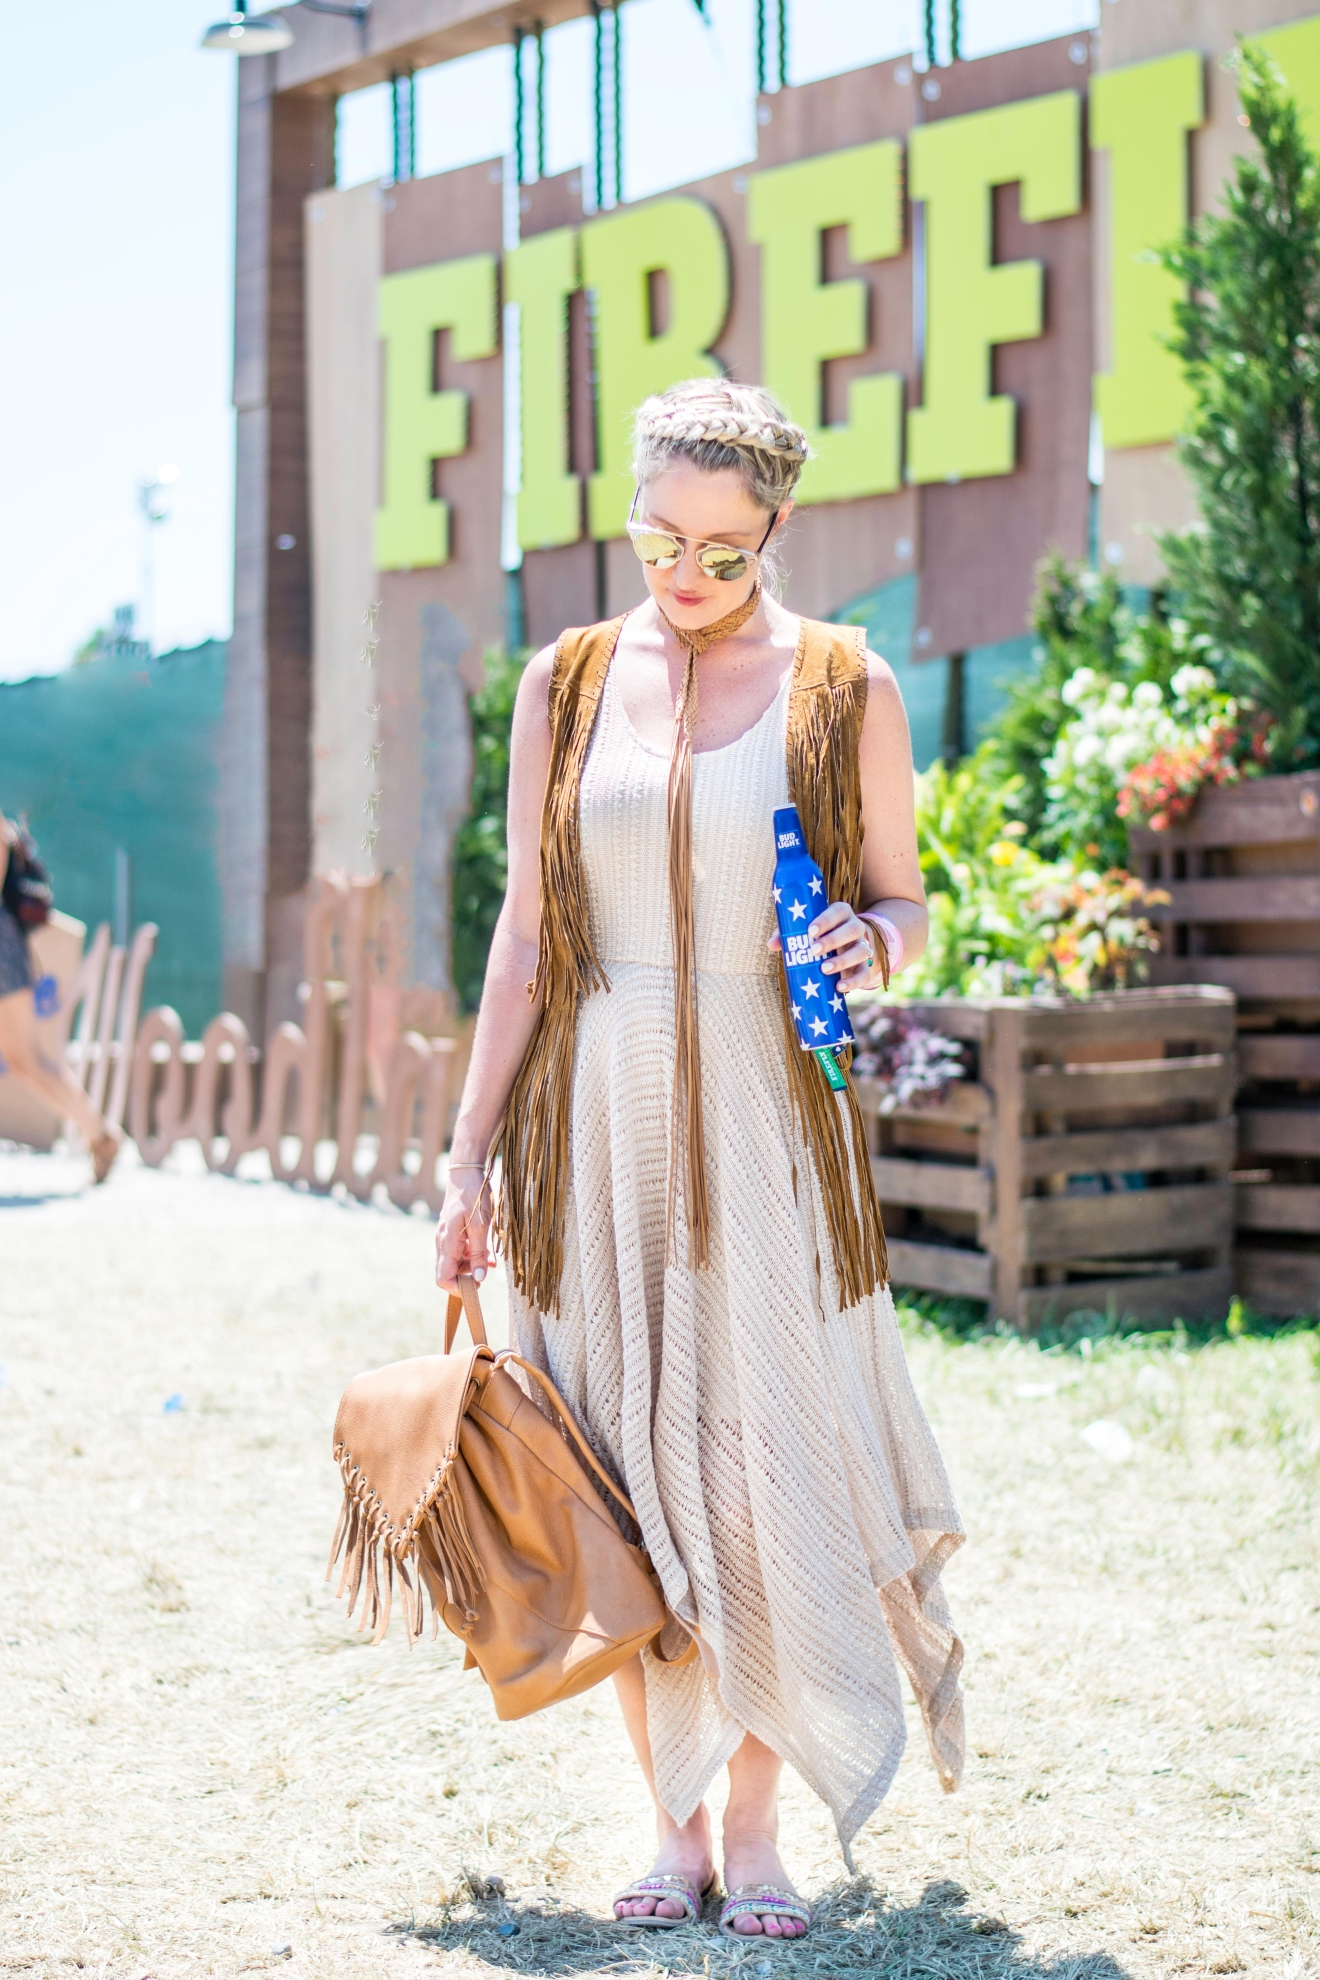 For the final day, Lacey pulled out all the fringe in her suitcase, including making a choker necklace out of the fringe belt that came with her dress. (Image: Lacey Faeh)